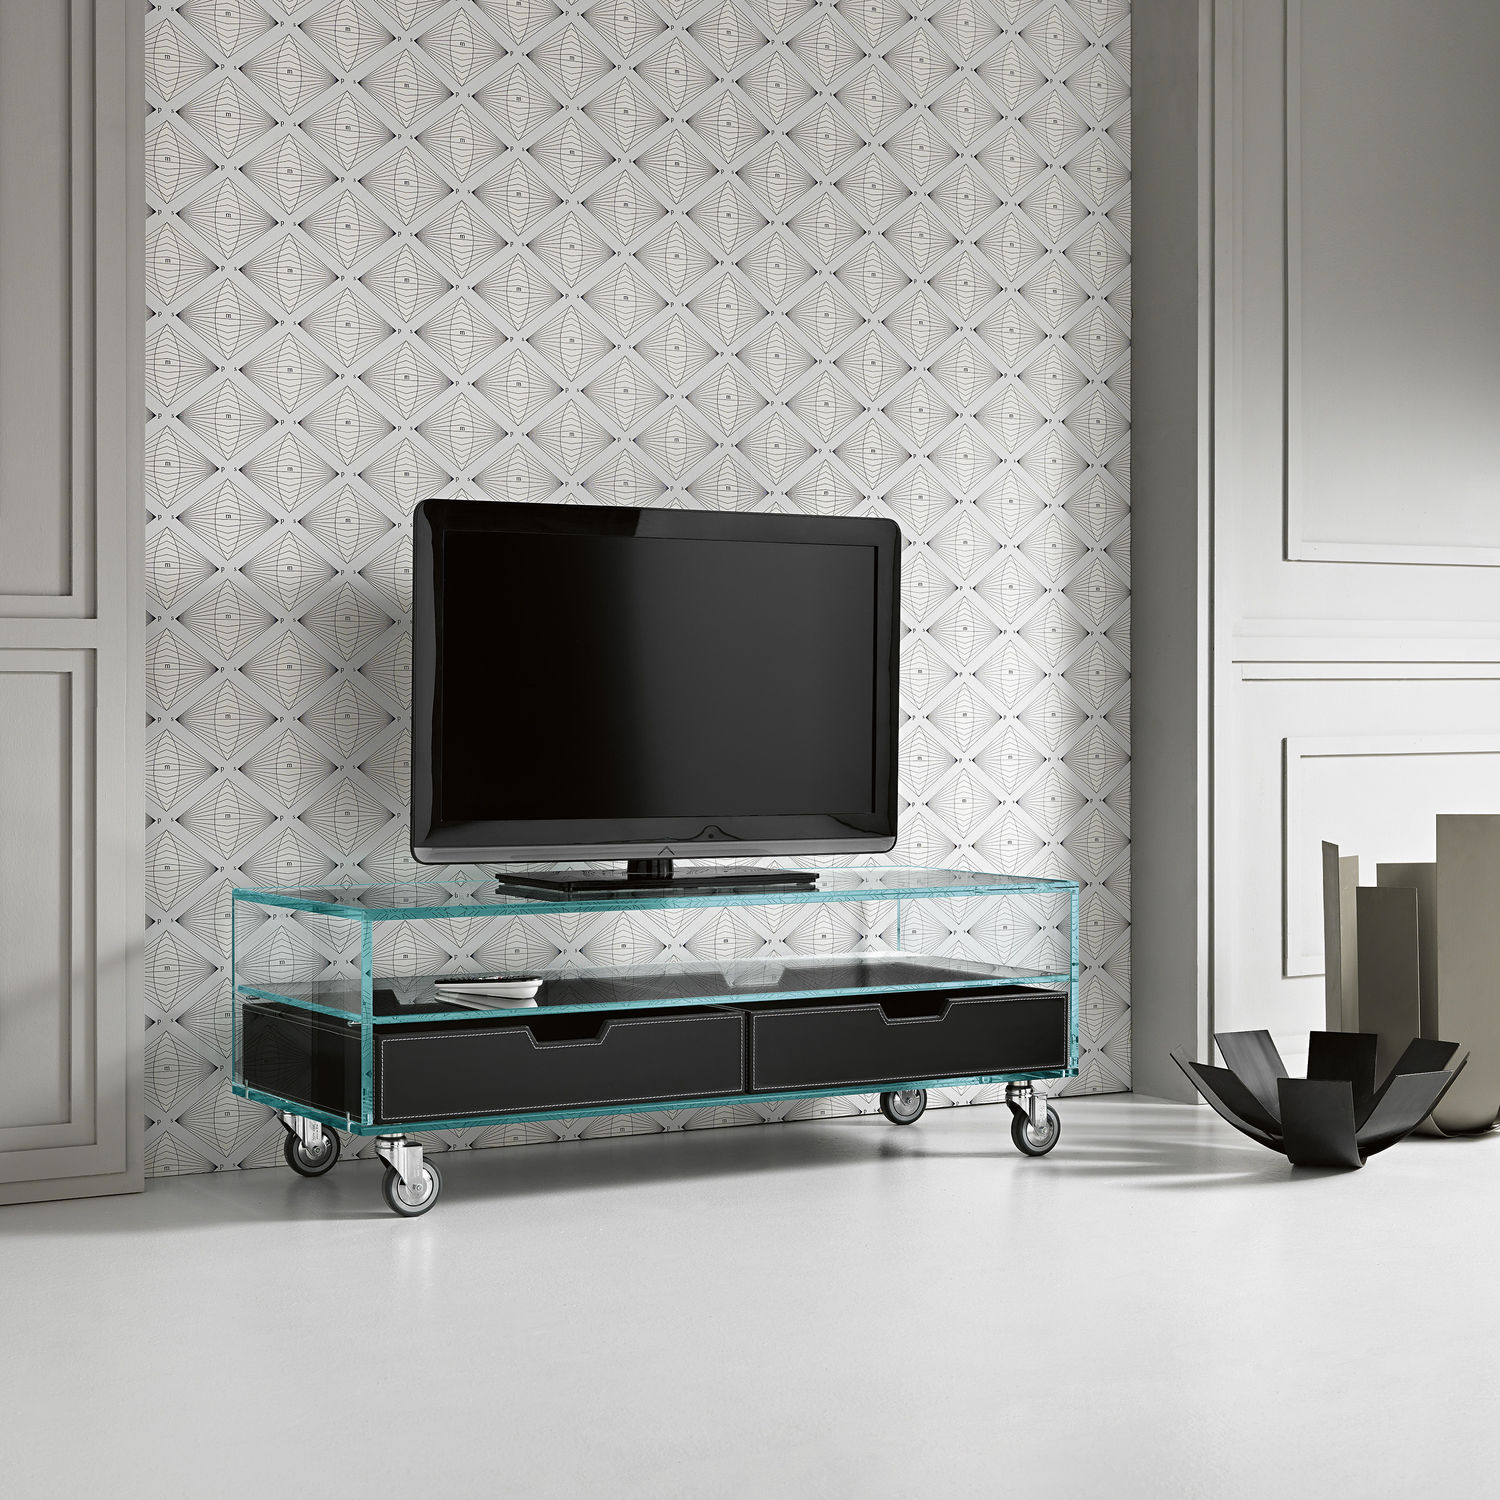 Meuble Tv Contemporain Roulettes En Verre Como Basso By  # Meuble Tv A Roulettes Design